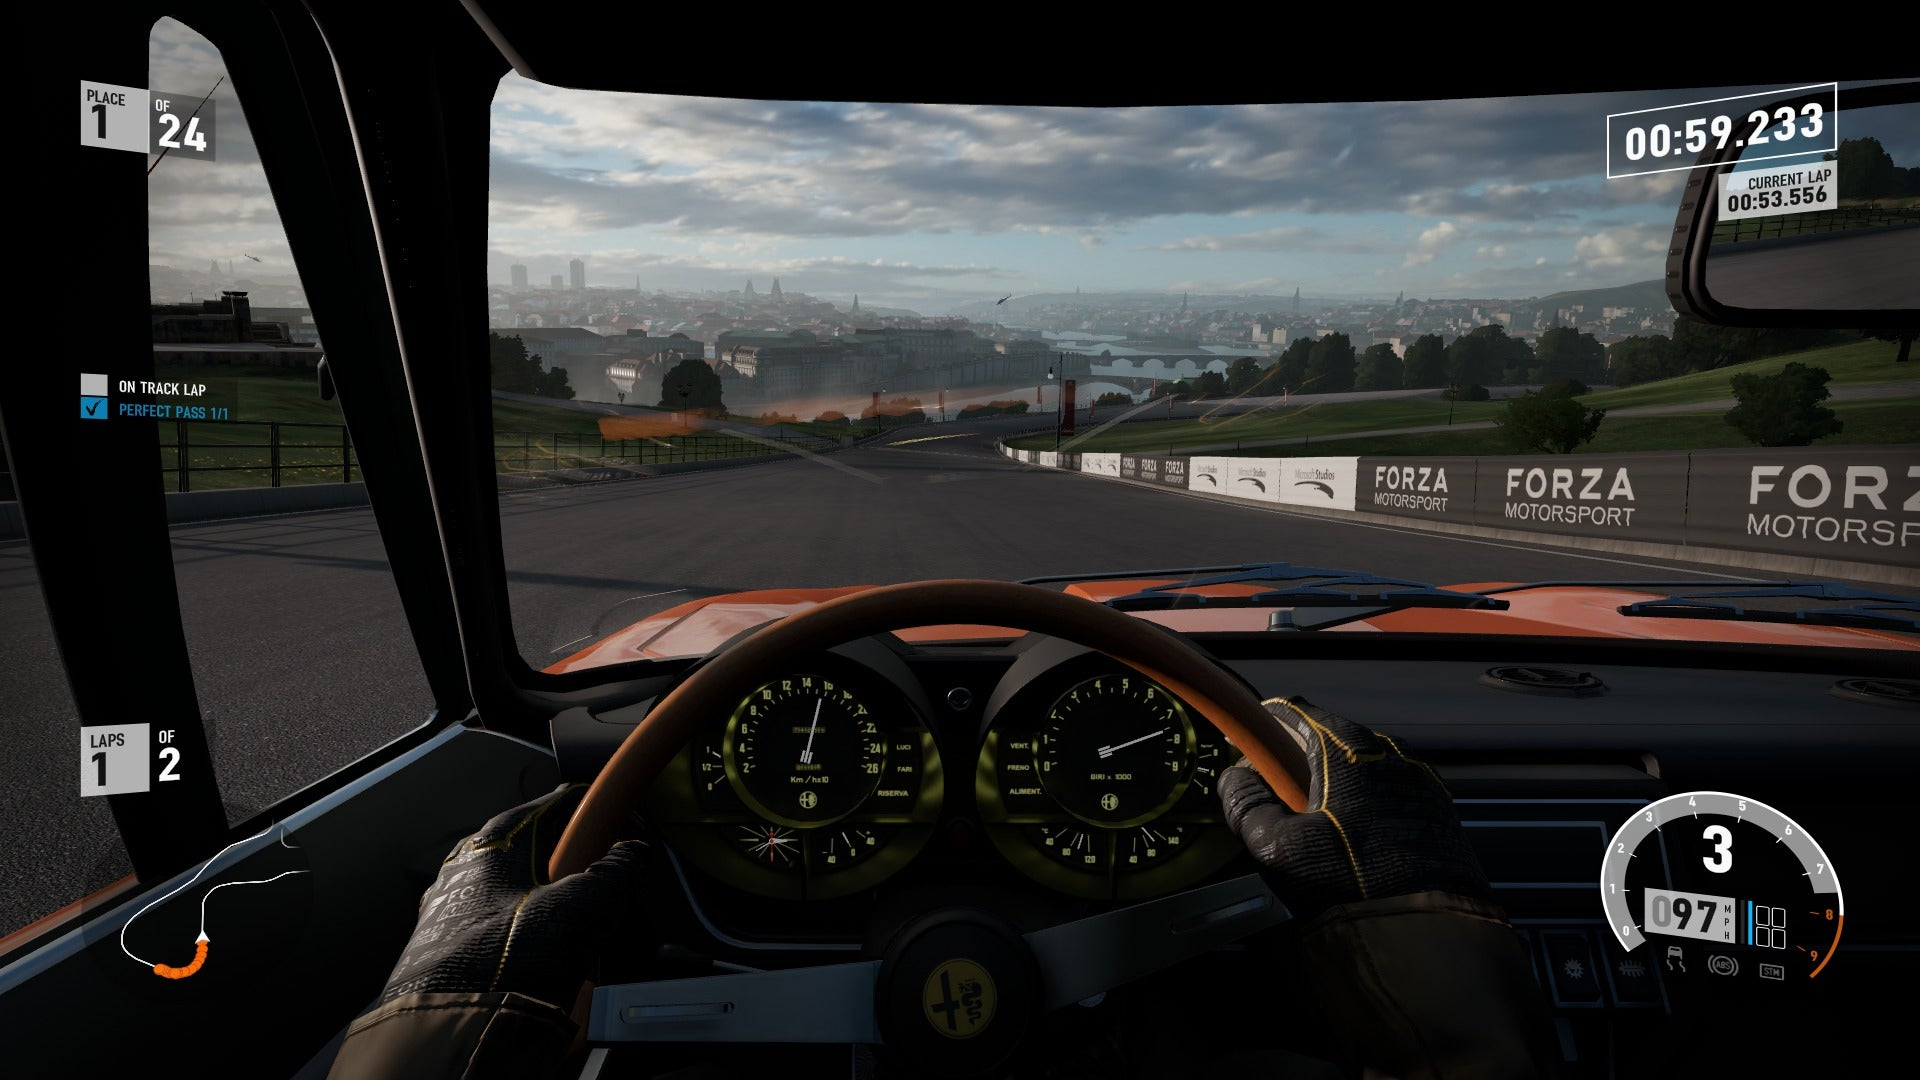 forza motorsport 7 review pc impressions pcworld. Black Bedroom Furniture Sets. Home Design Ideas